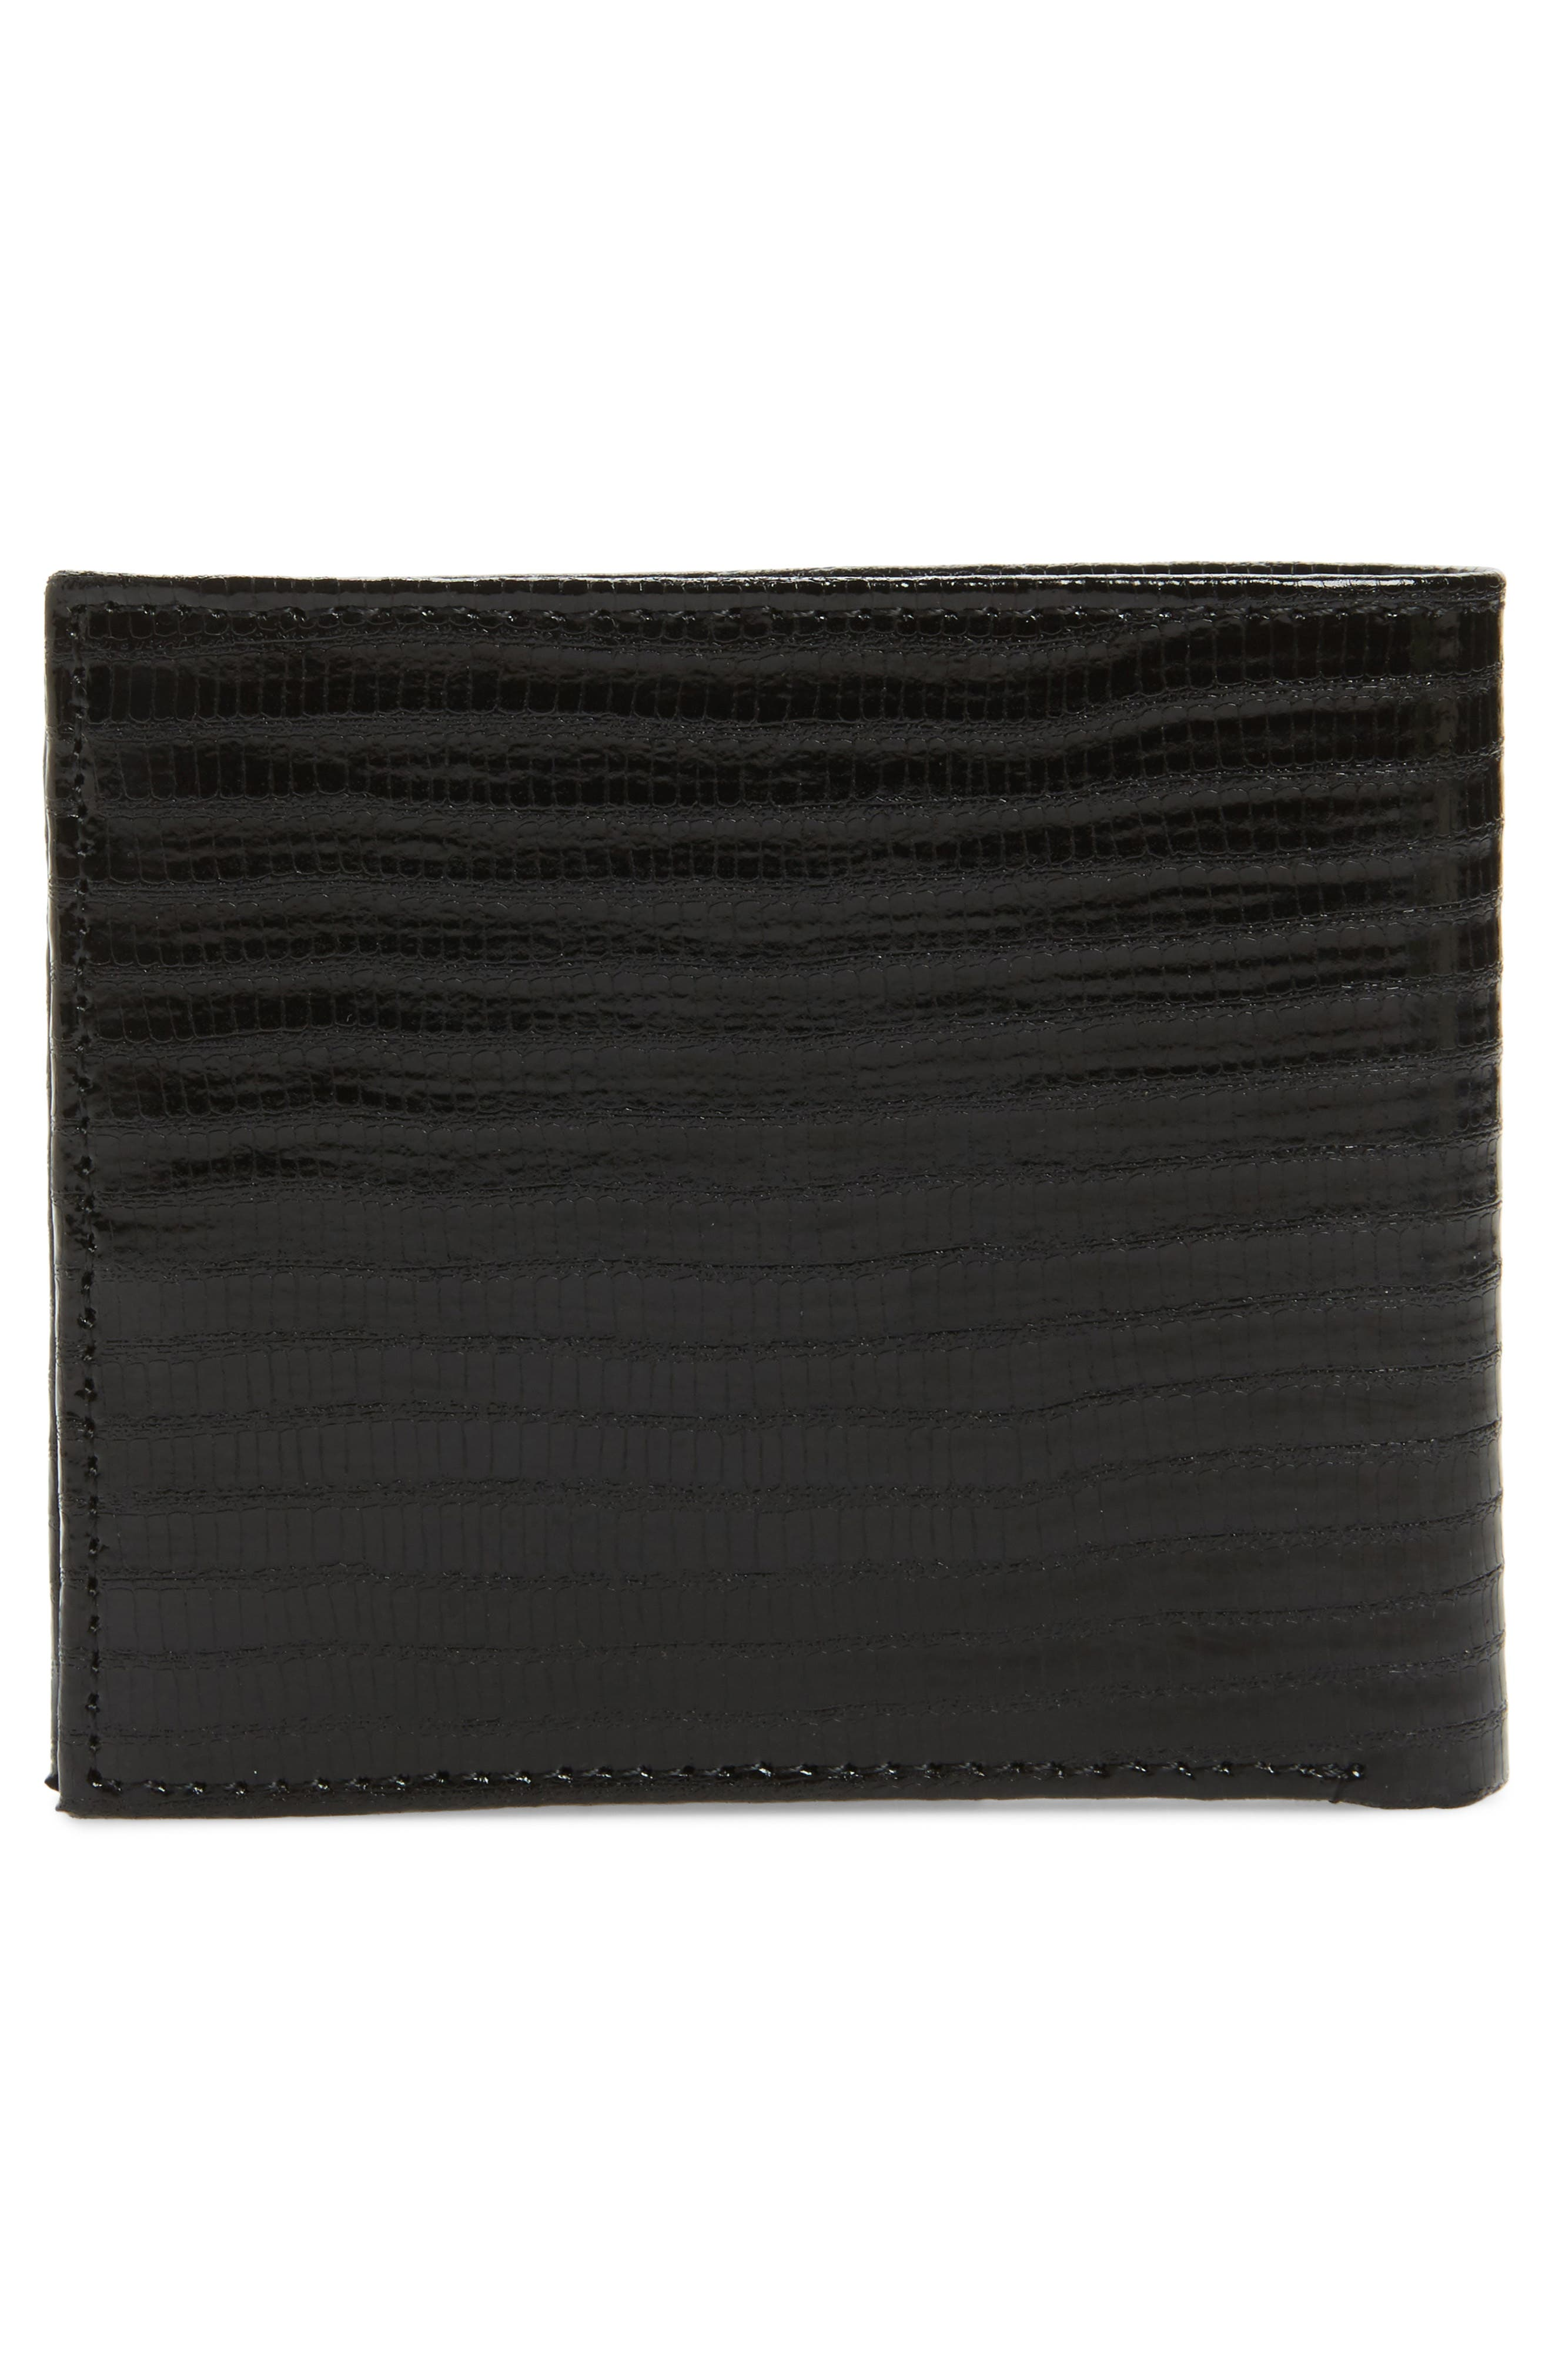 Slayts Leather Wallet,                             Alternate thumbnail 3, color,                             Black